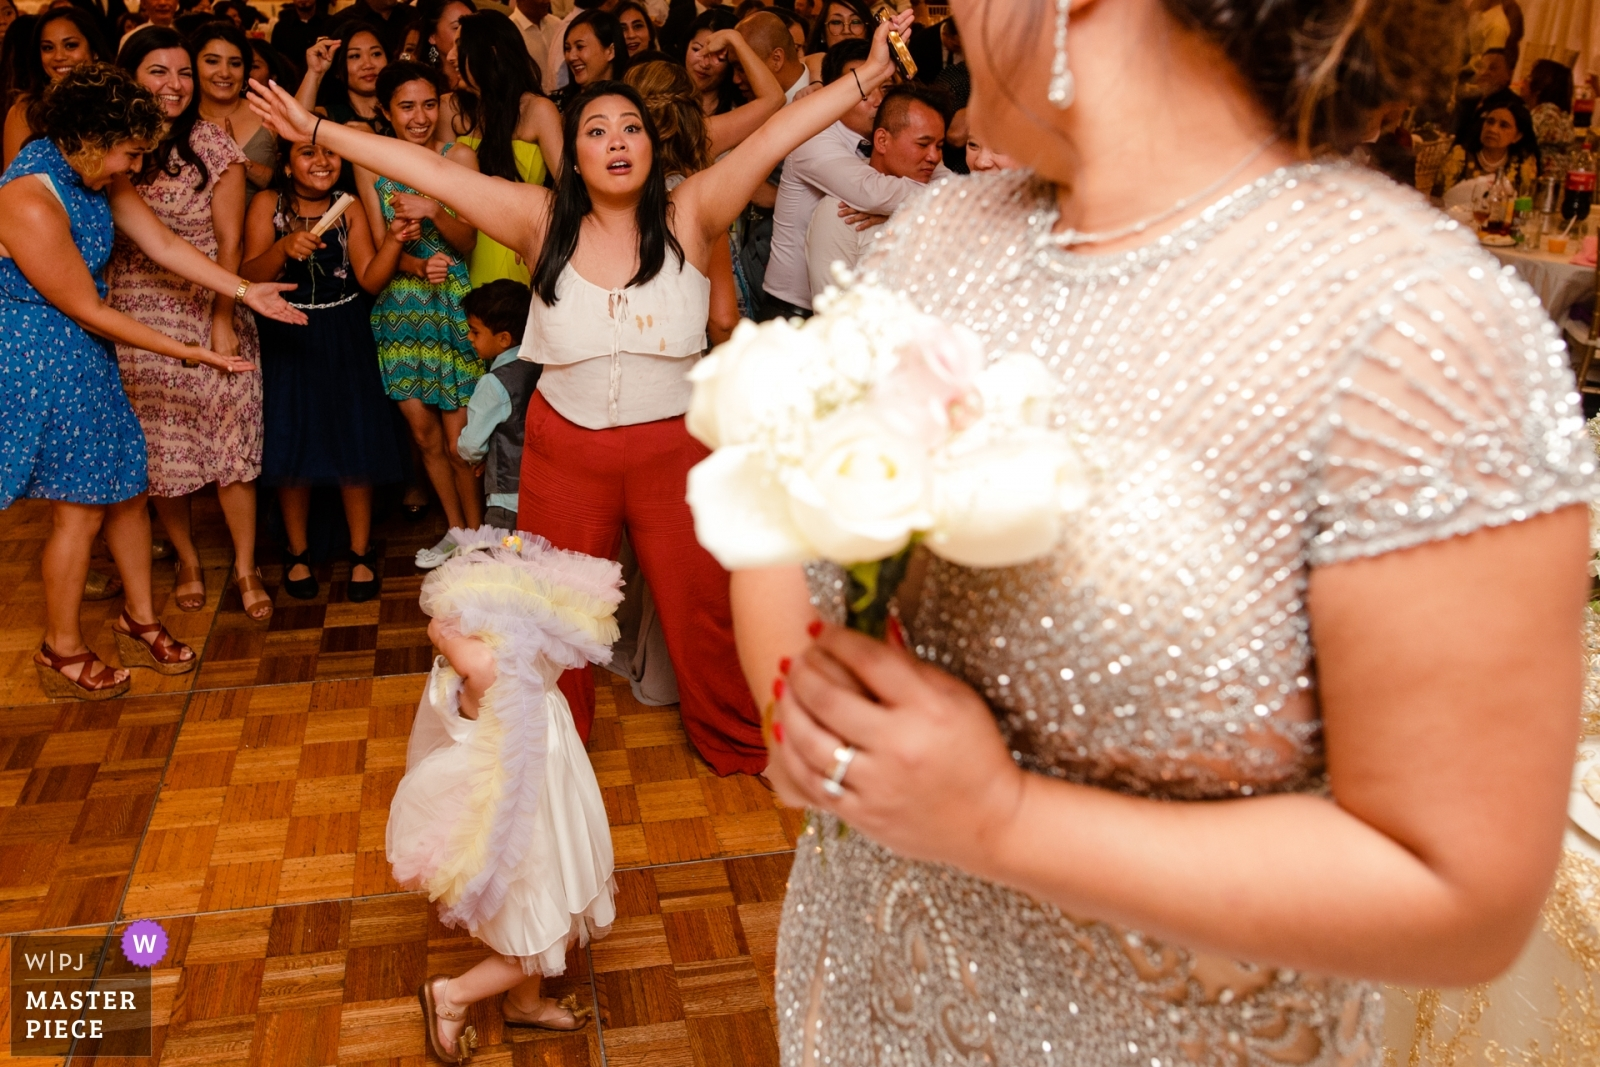 The little girl walked over before the bride threw the bouquet - San Jose, California - Northern Wedding Photography -  | Dynasty Restaurant